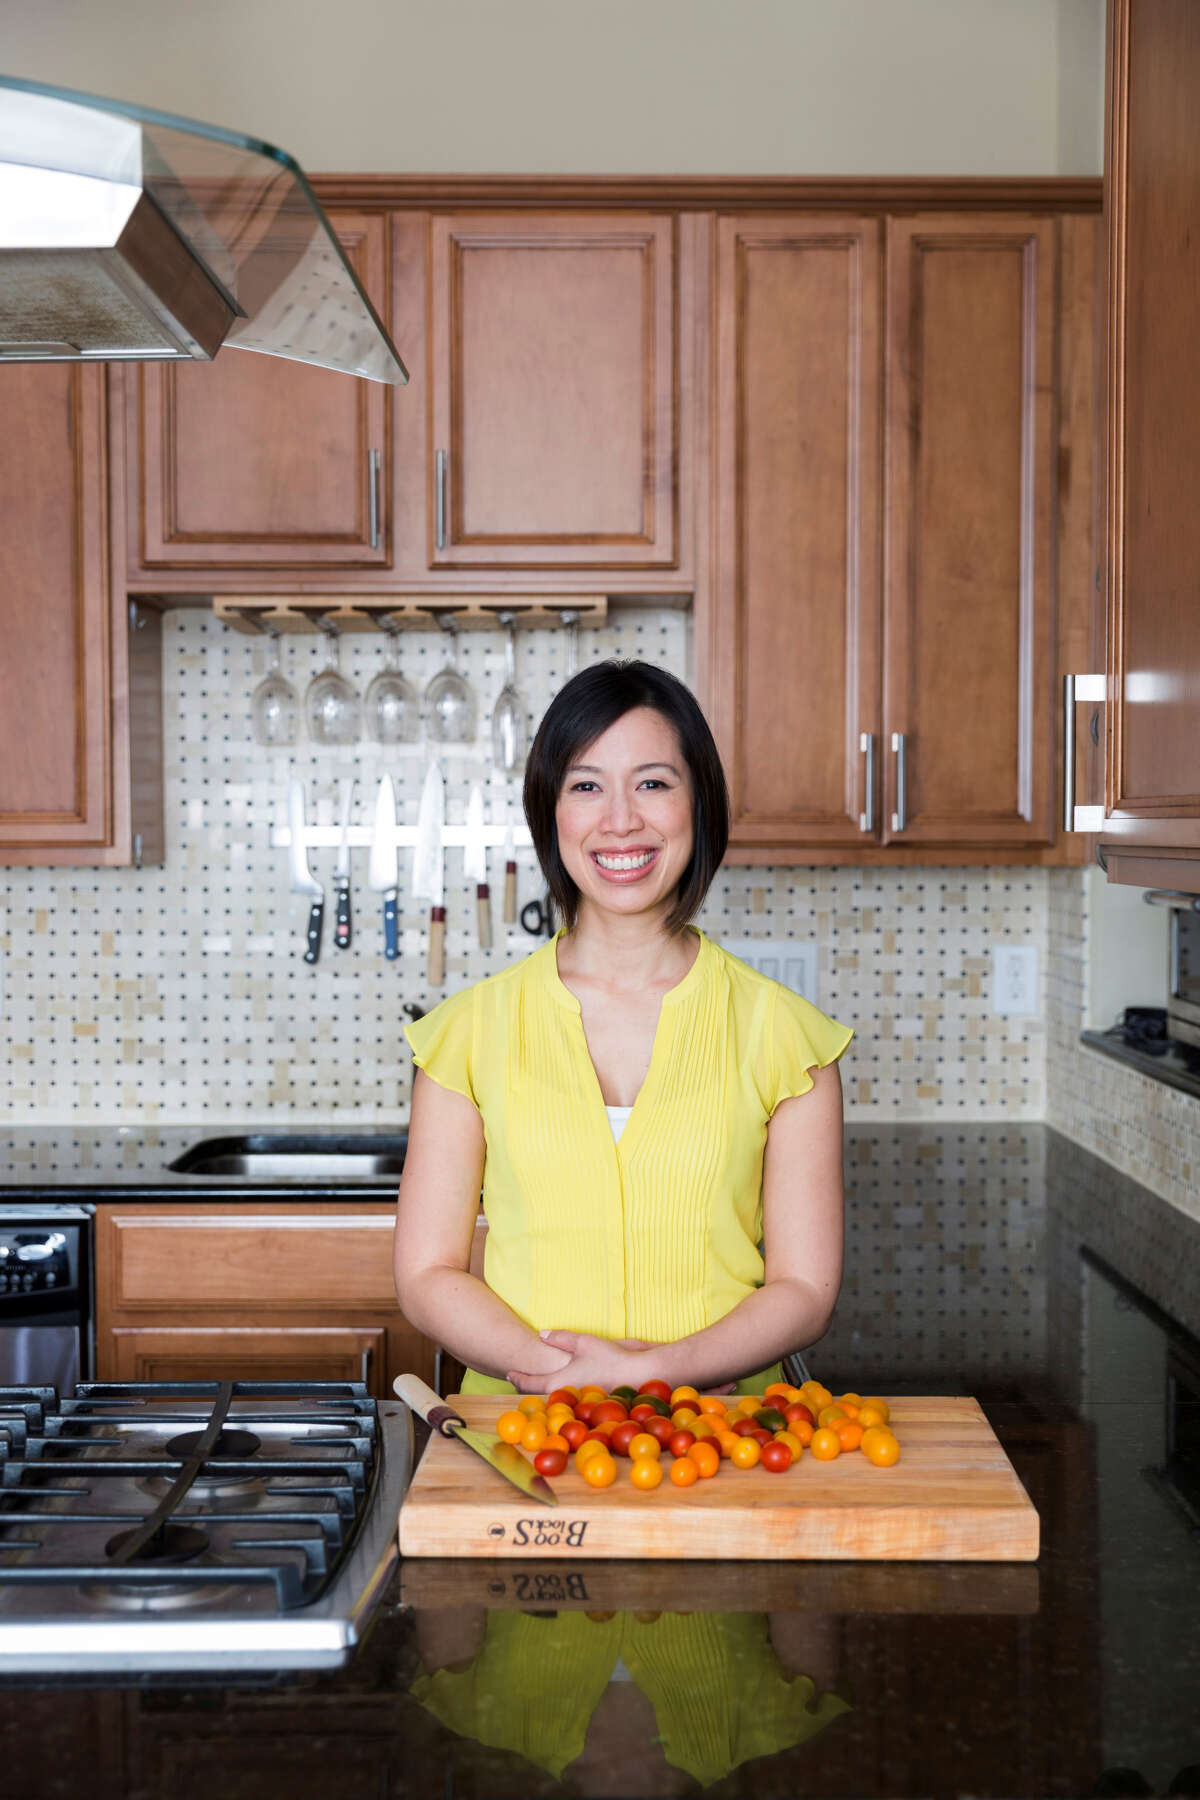 """Houstonian Christine Ha, winner of Season 3 of """"MasterChef,"""" will open her first restaurant, the Blind Goat, at Bravery Chef Hall in downtown Houston. She is the author of """"Recipes from My Home Kitchen: Asian and American Comfort Food."""""""